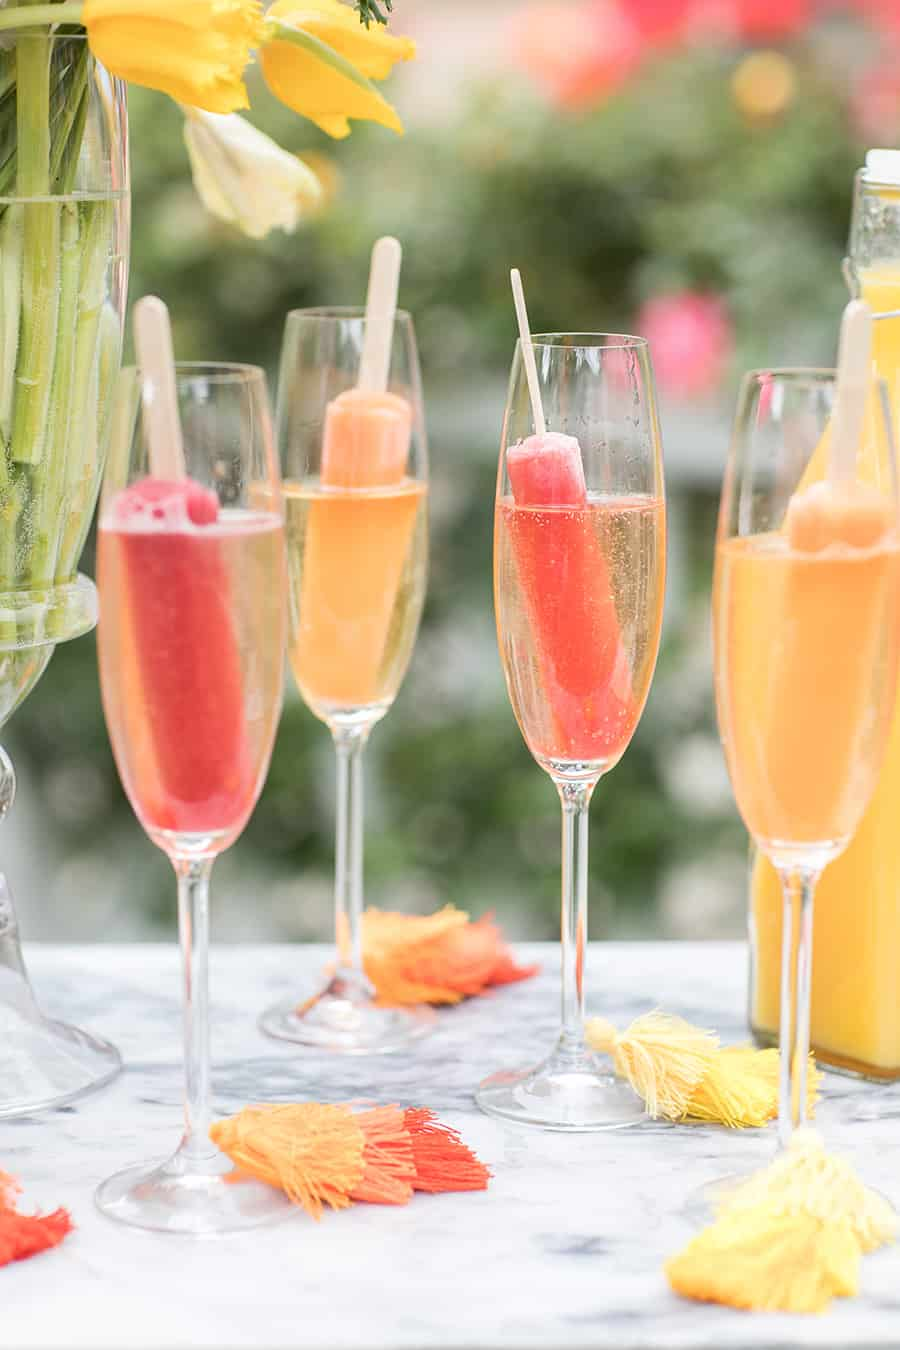 Popsicles in glasses filled with Champagne